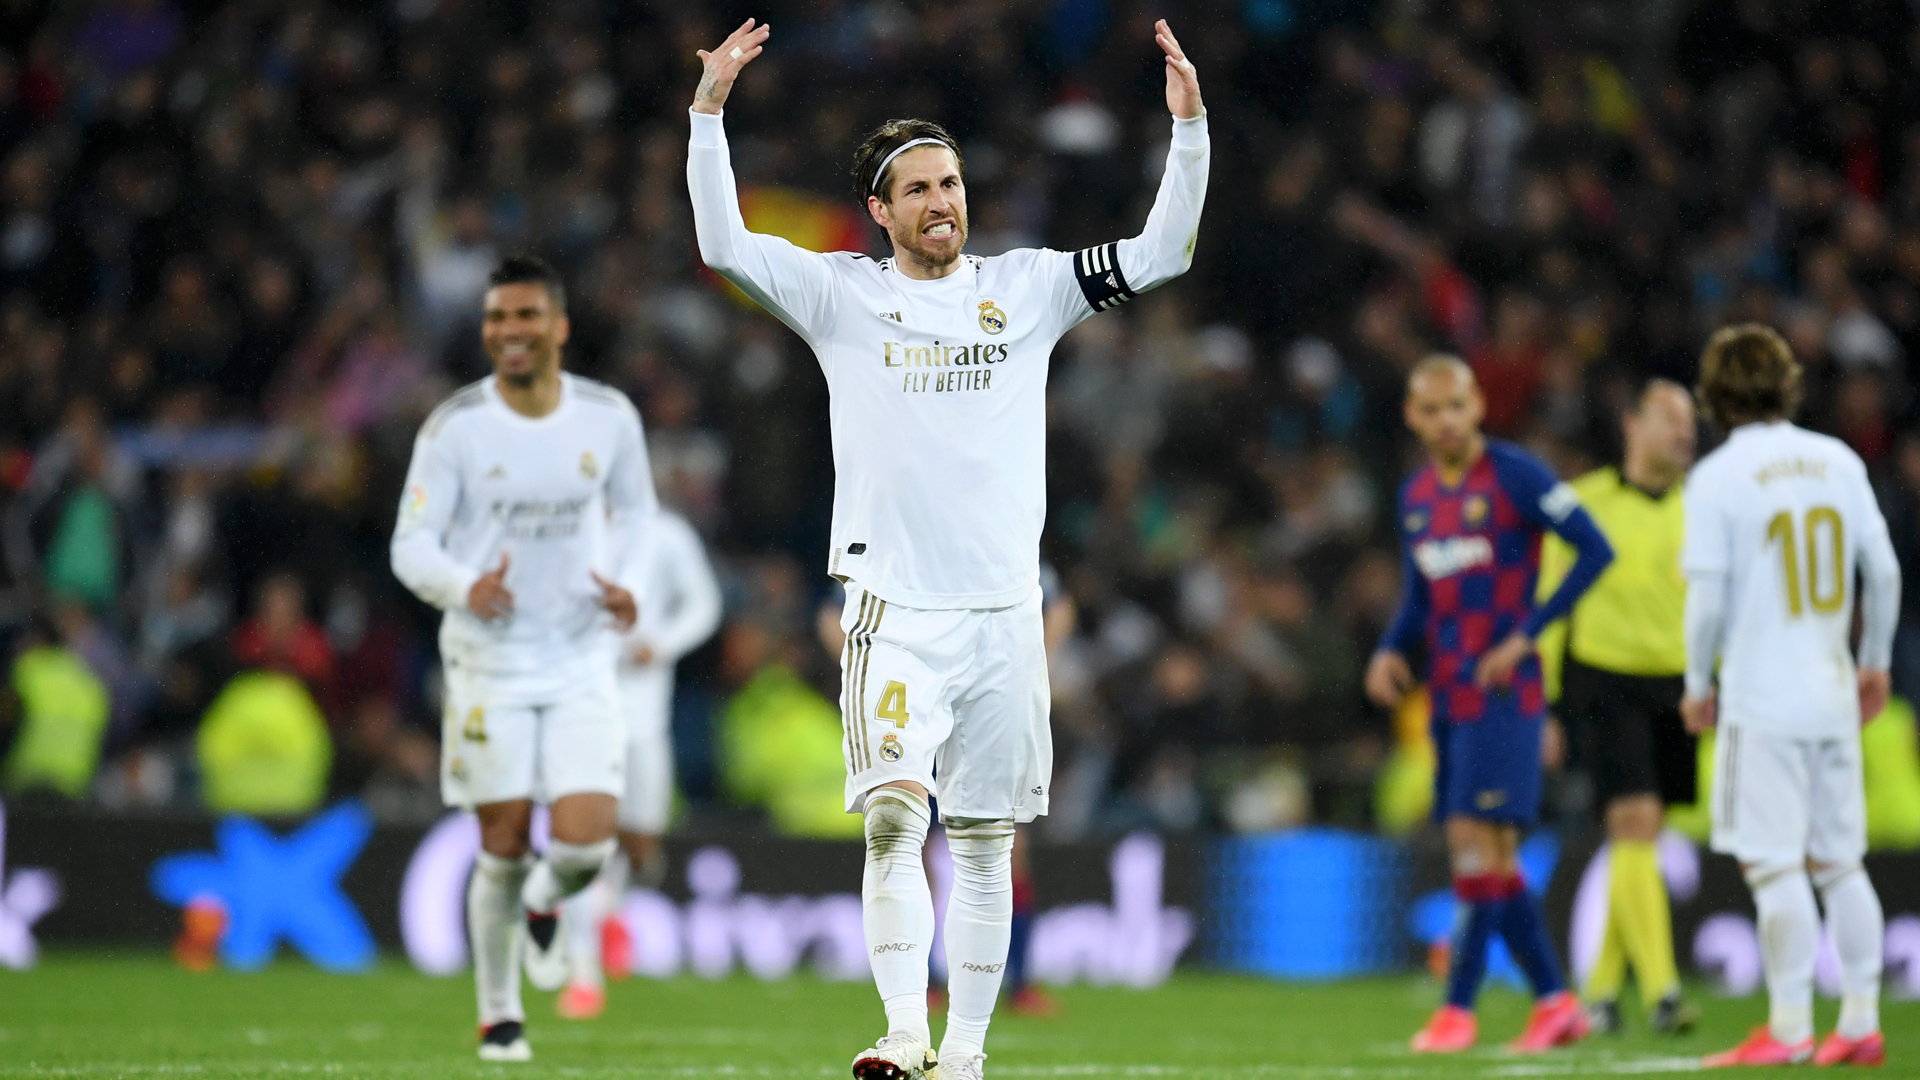 Worst Madrid? I'd sign to win every Clasico like that – Ramos hits back at Pique